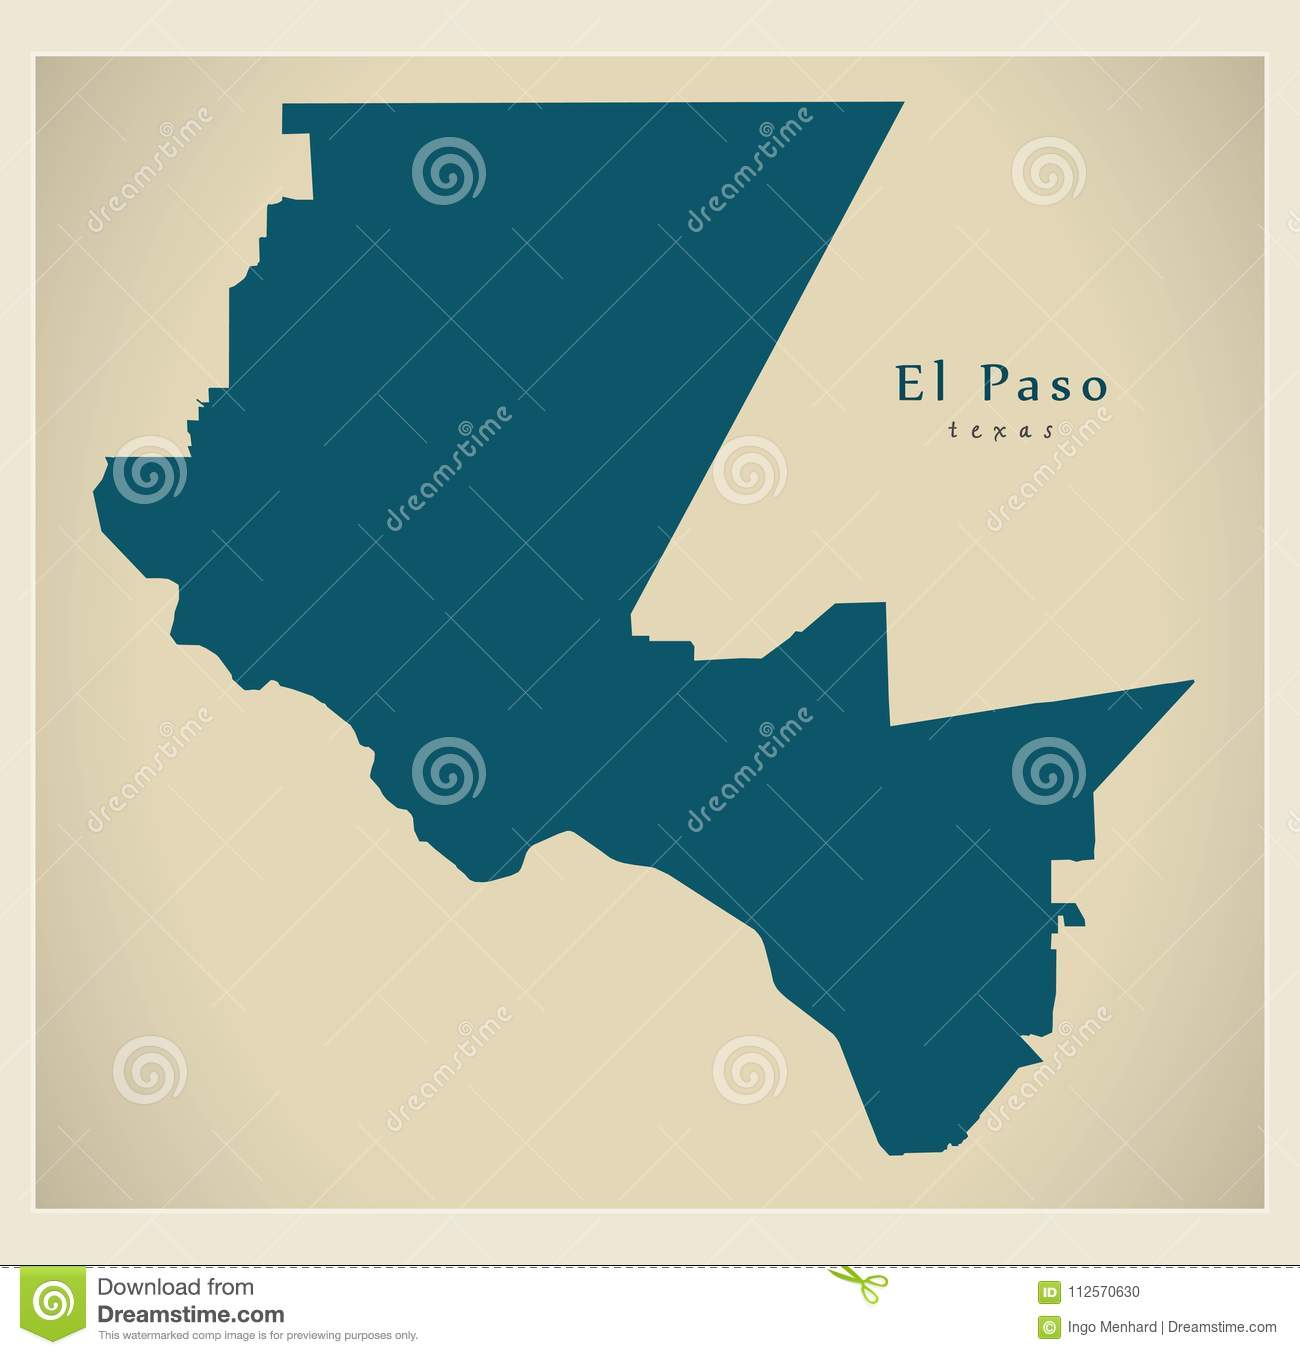 Map Of Texas City.Modern Map El Paso Texas City Of The Usa Stock Vector